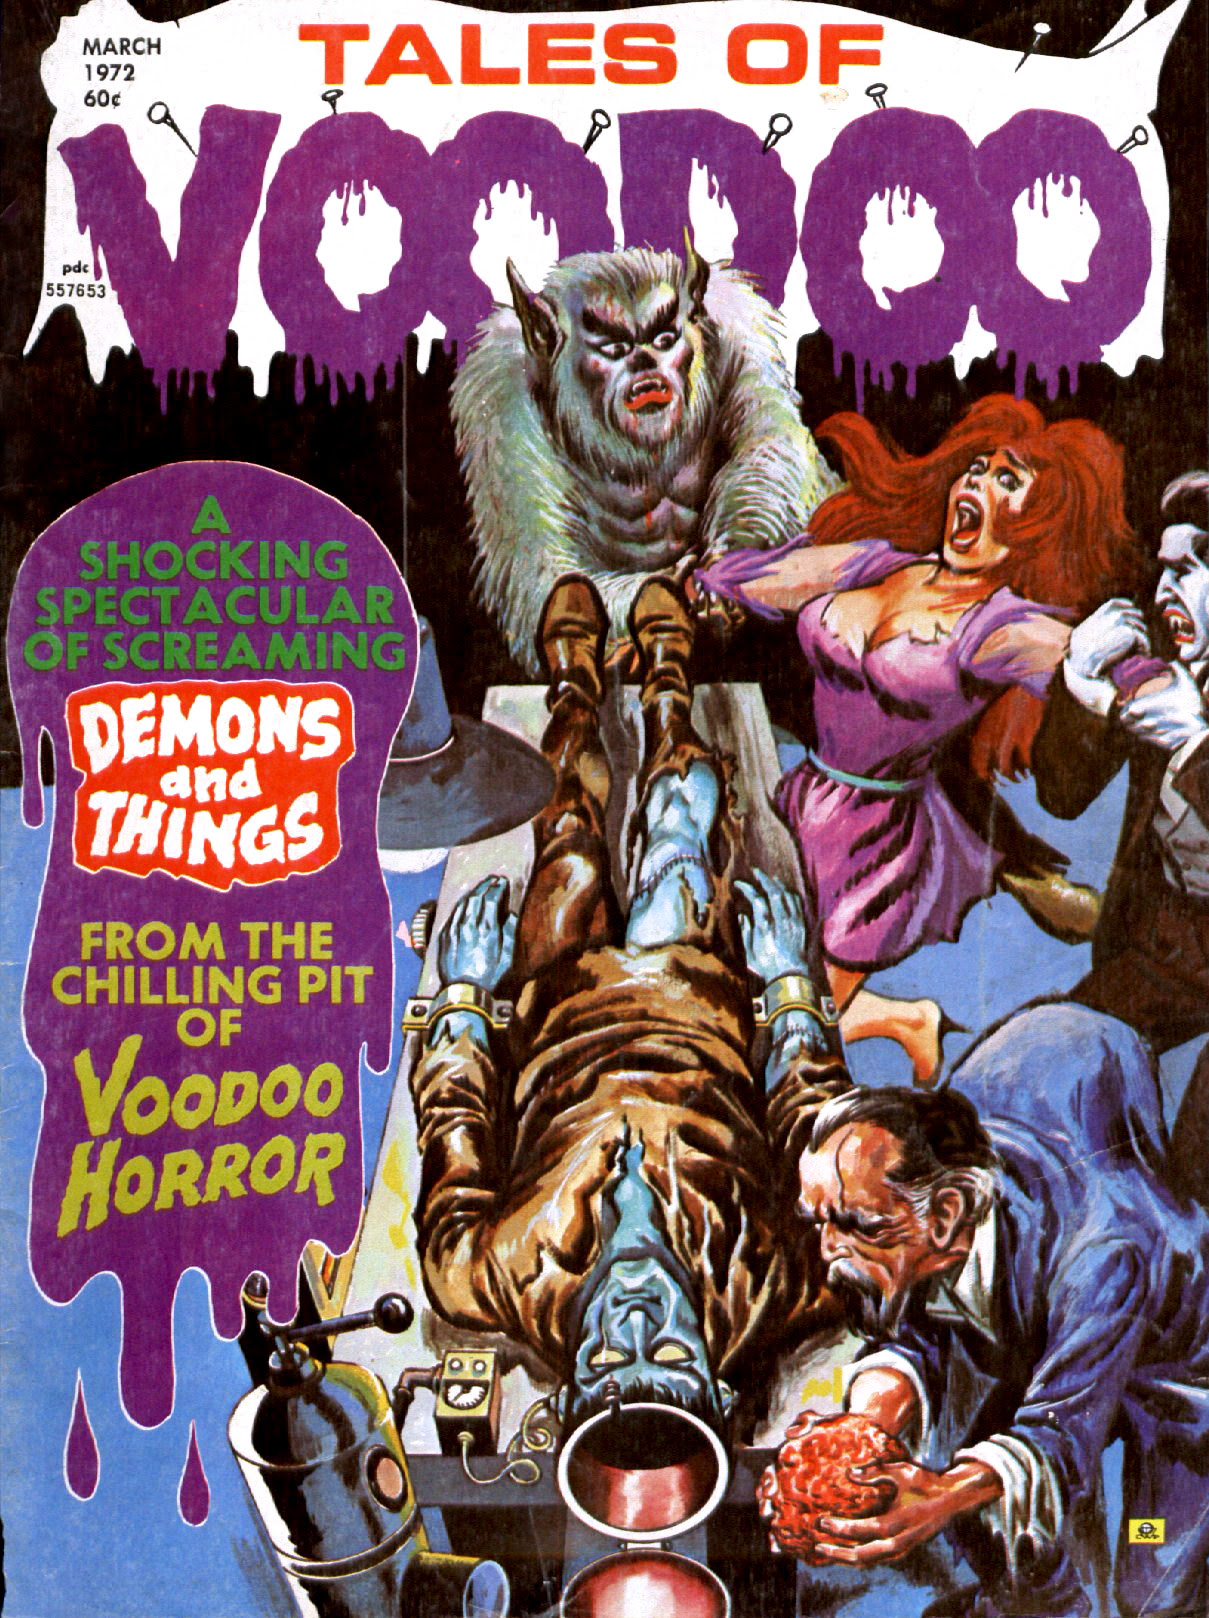 Tales of Voodoo Vol. 5 #2 (Eerie Publications 1972)